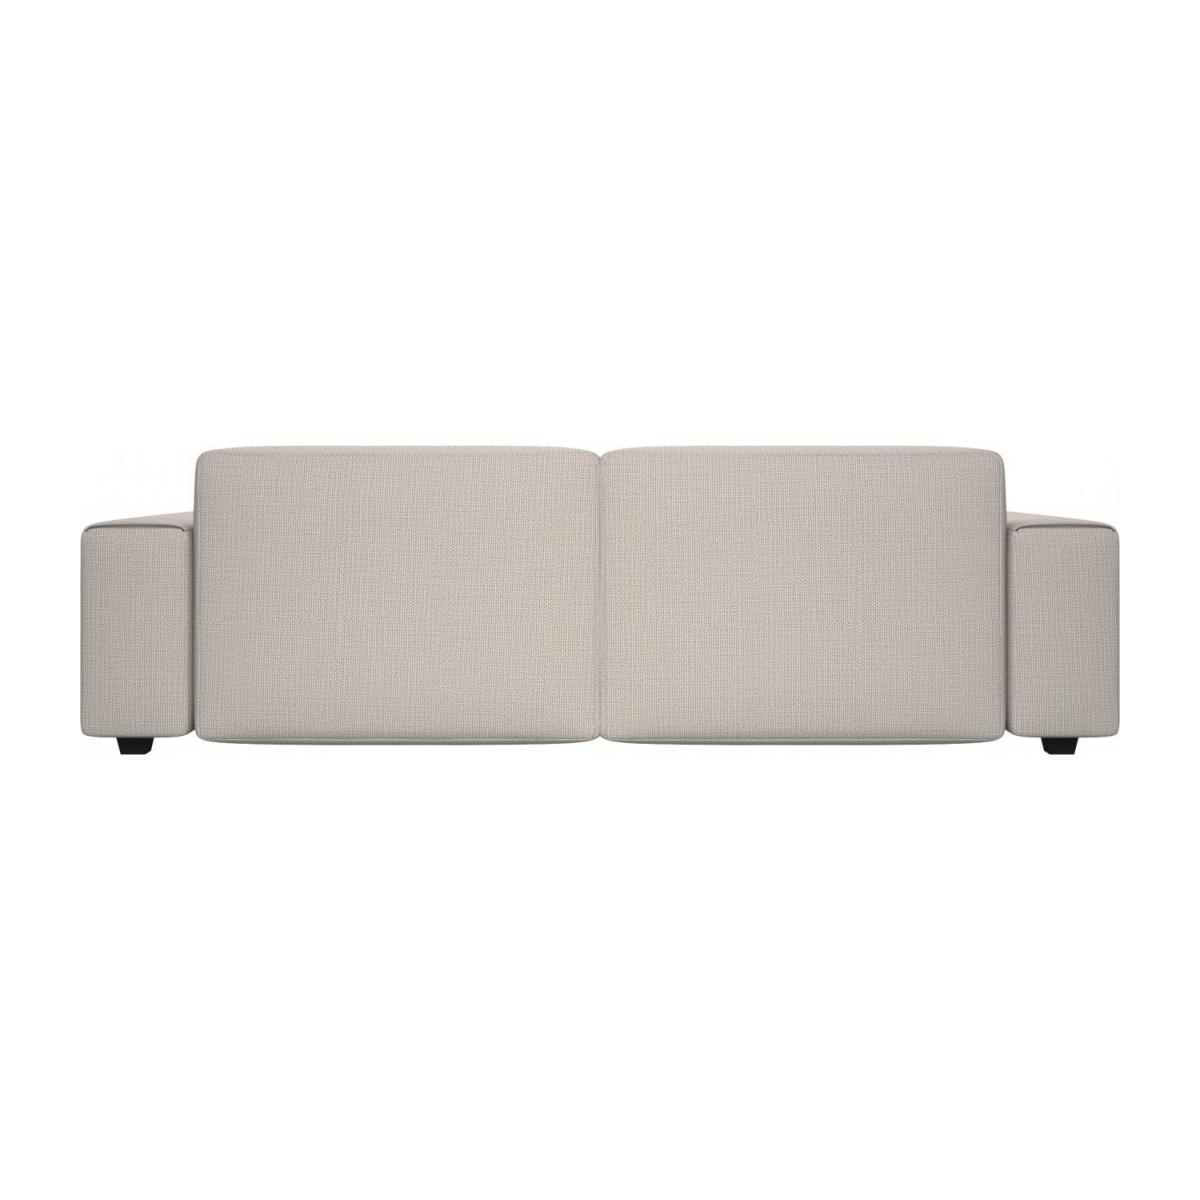 4 seater sofa in Fasoli fabric, snow white n°4